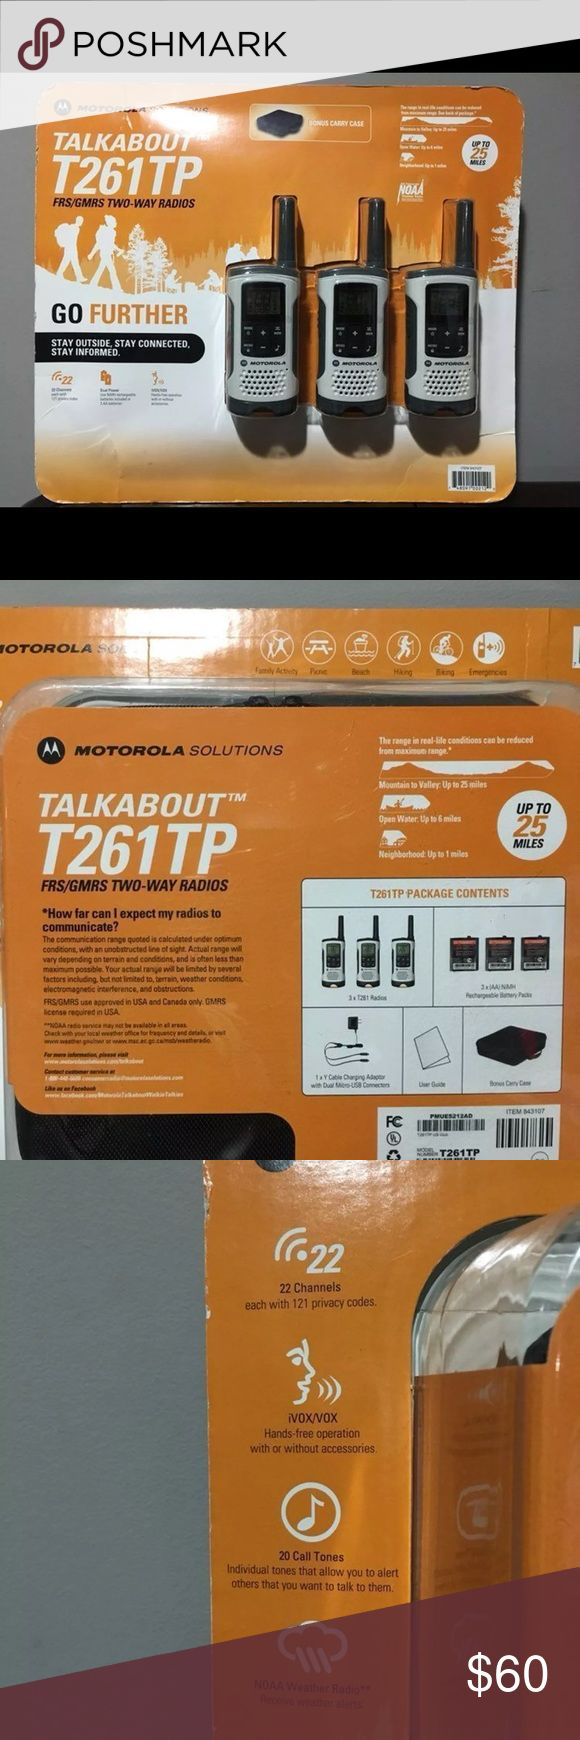 Motorola Talkabout T261TP Two-way Radio Brand new, still in box, never opened. Set of 3 white radios, lightweight, compact and durable radio comes packed with essential features.  * Range up to 25 miles. * 11 Weather Channels (7 NOAA) with alert feature * 22 channels and 121 privacy codes, totaling 2,662 combinations * iVOX/VOX acting like a speakerphone and allowing hands-free communication * Rechargeable NiMH batteries Motorola Other